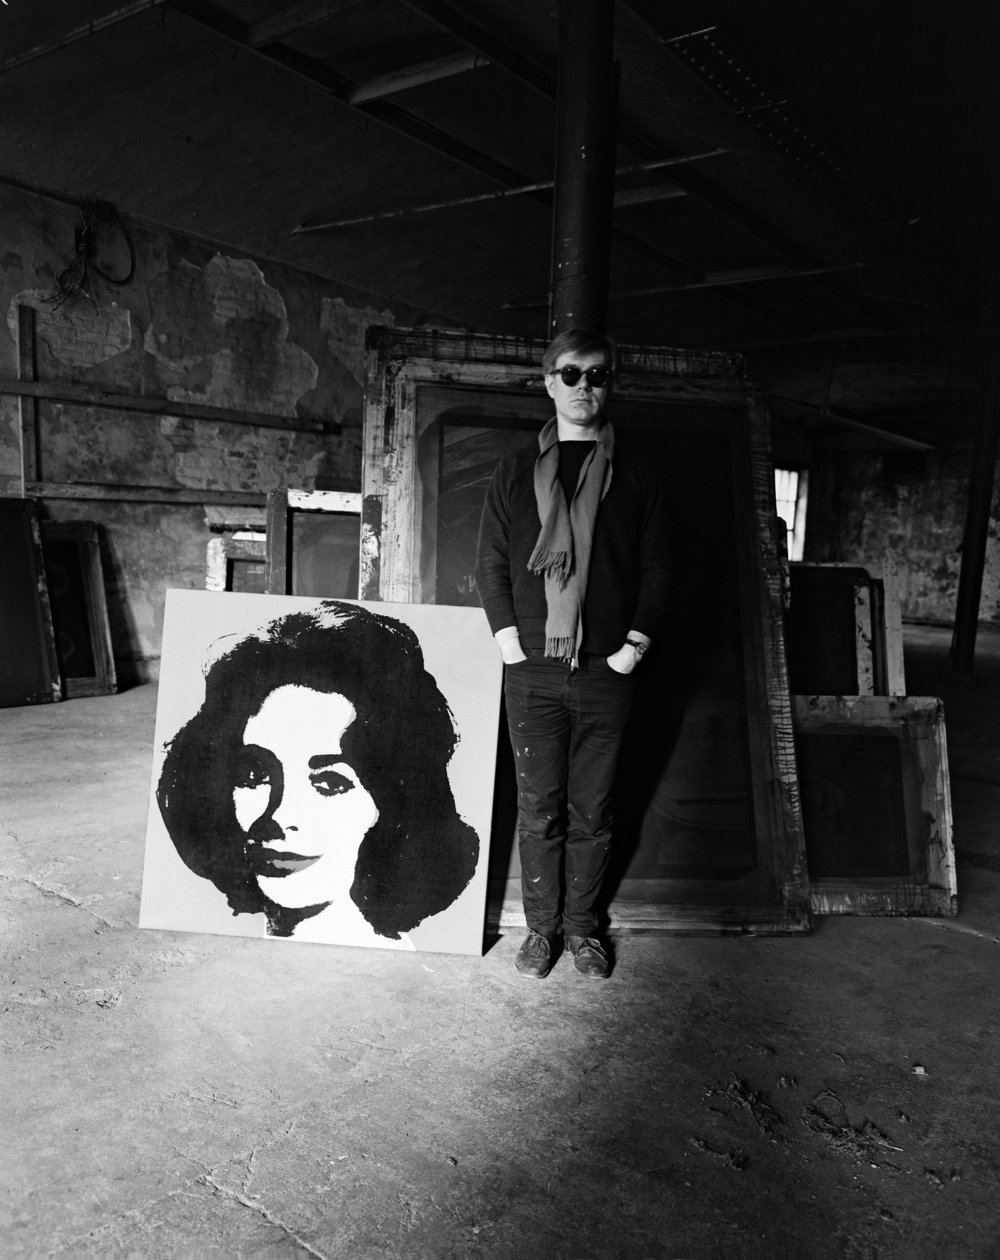 Evelyn Hofer, Andy Warhol standing in the factory with a Liz painting and several screens in the background, January 29, 1964, gelatin silver print, 14 x 11 in. The Andy Warhol Museum, Pittsburgh; Founding Collection, Contribution The Andy Warhol Foundation for the Visual Arts, Inc, TC31.115..8. Image provided by the estate of Evelyn Hofer